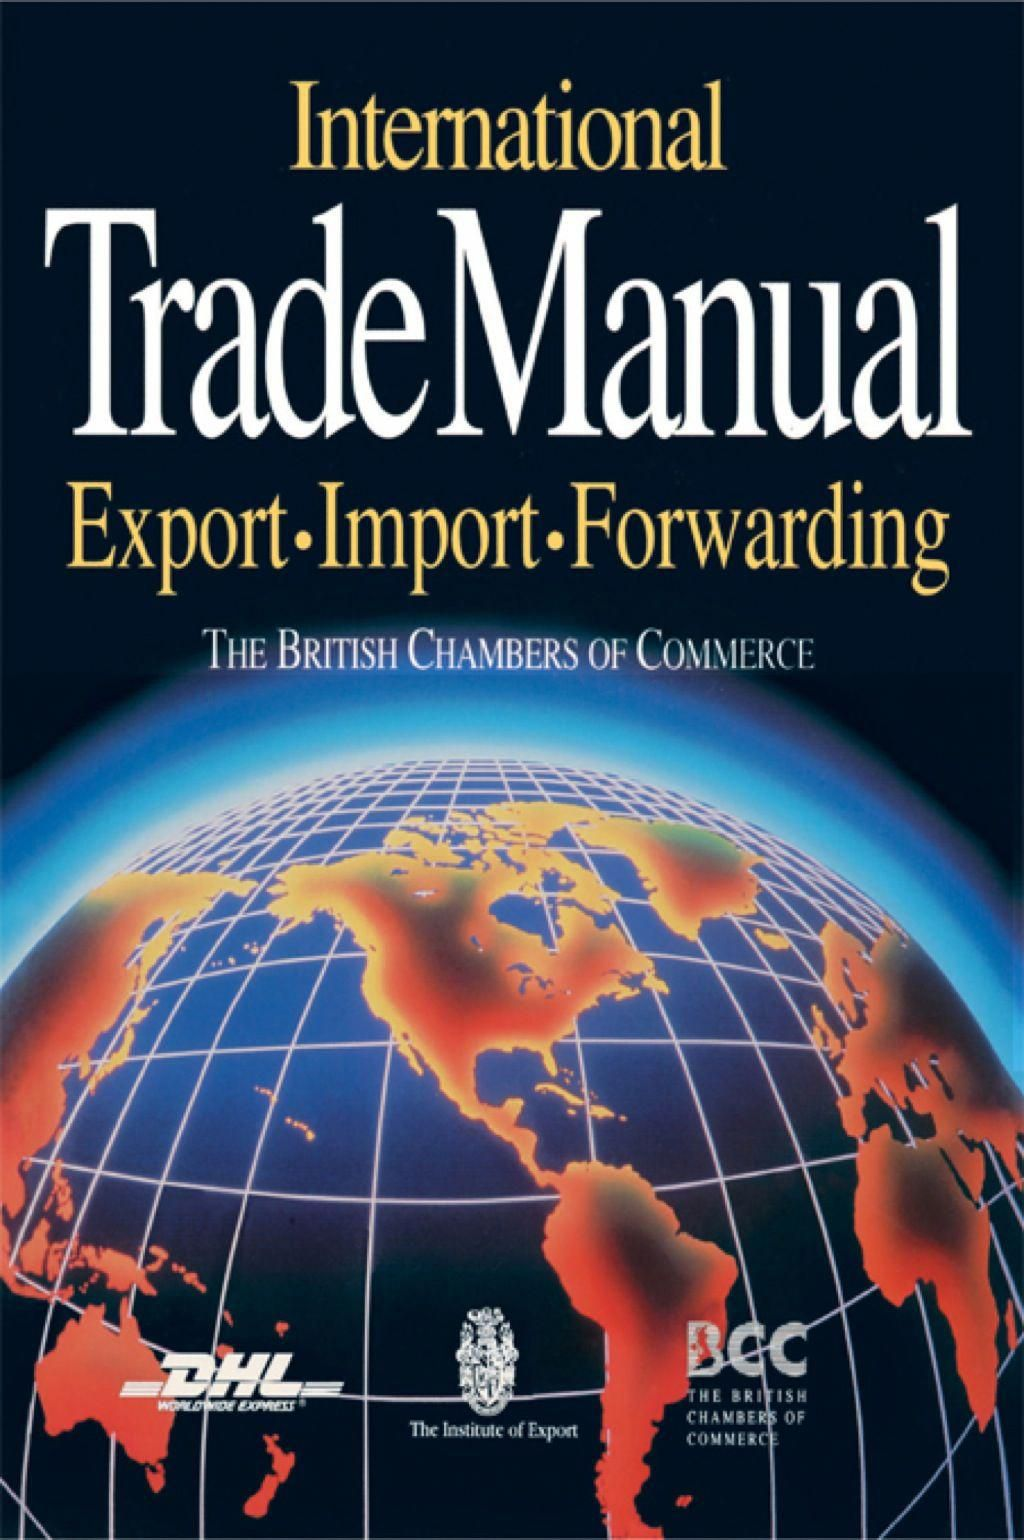 International Trade Manual Ebook Rental Tradingfutures